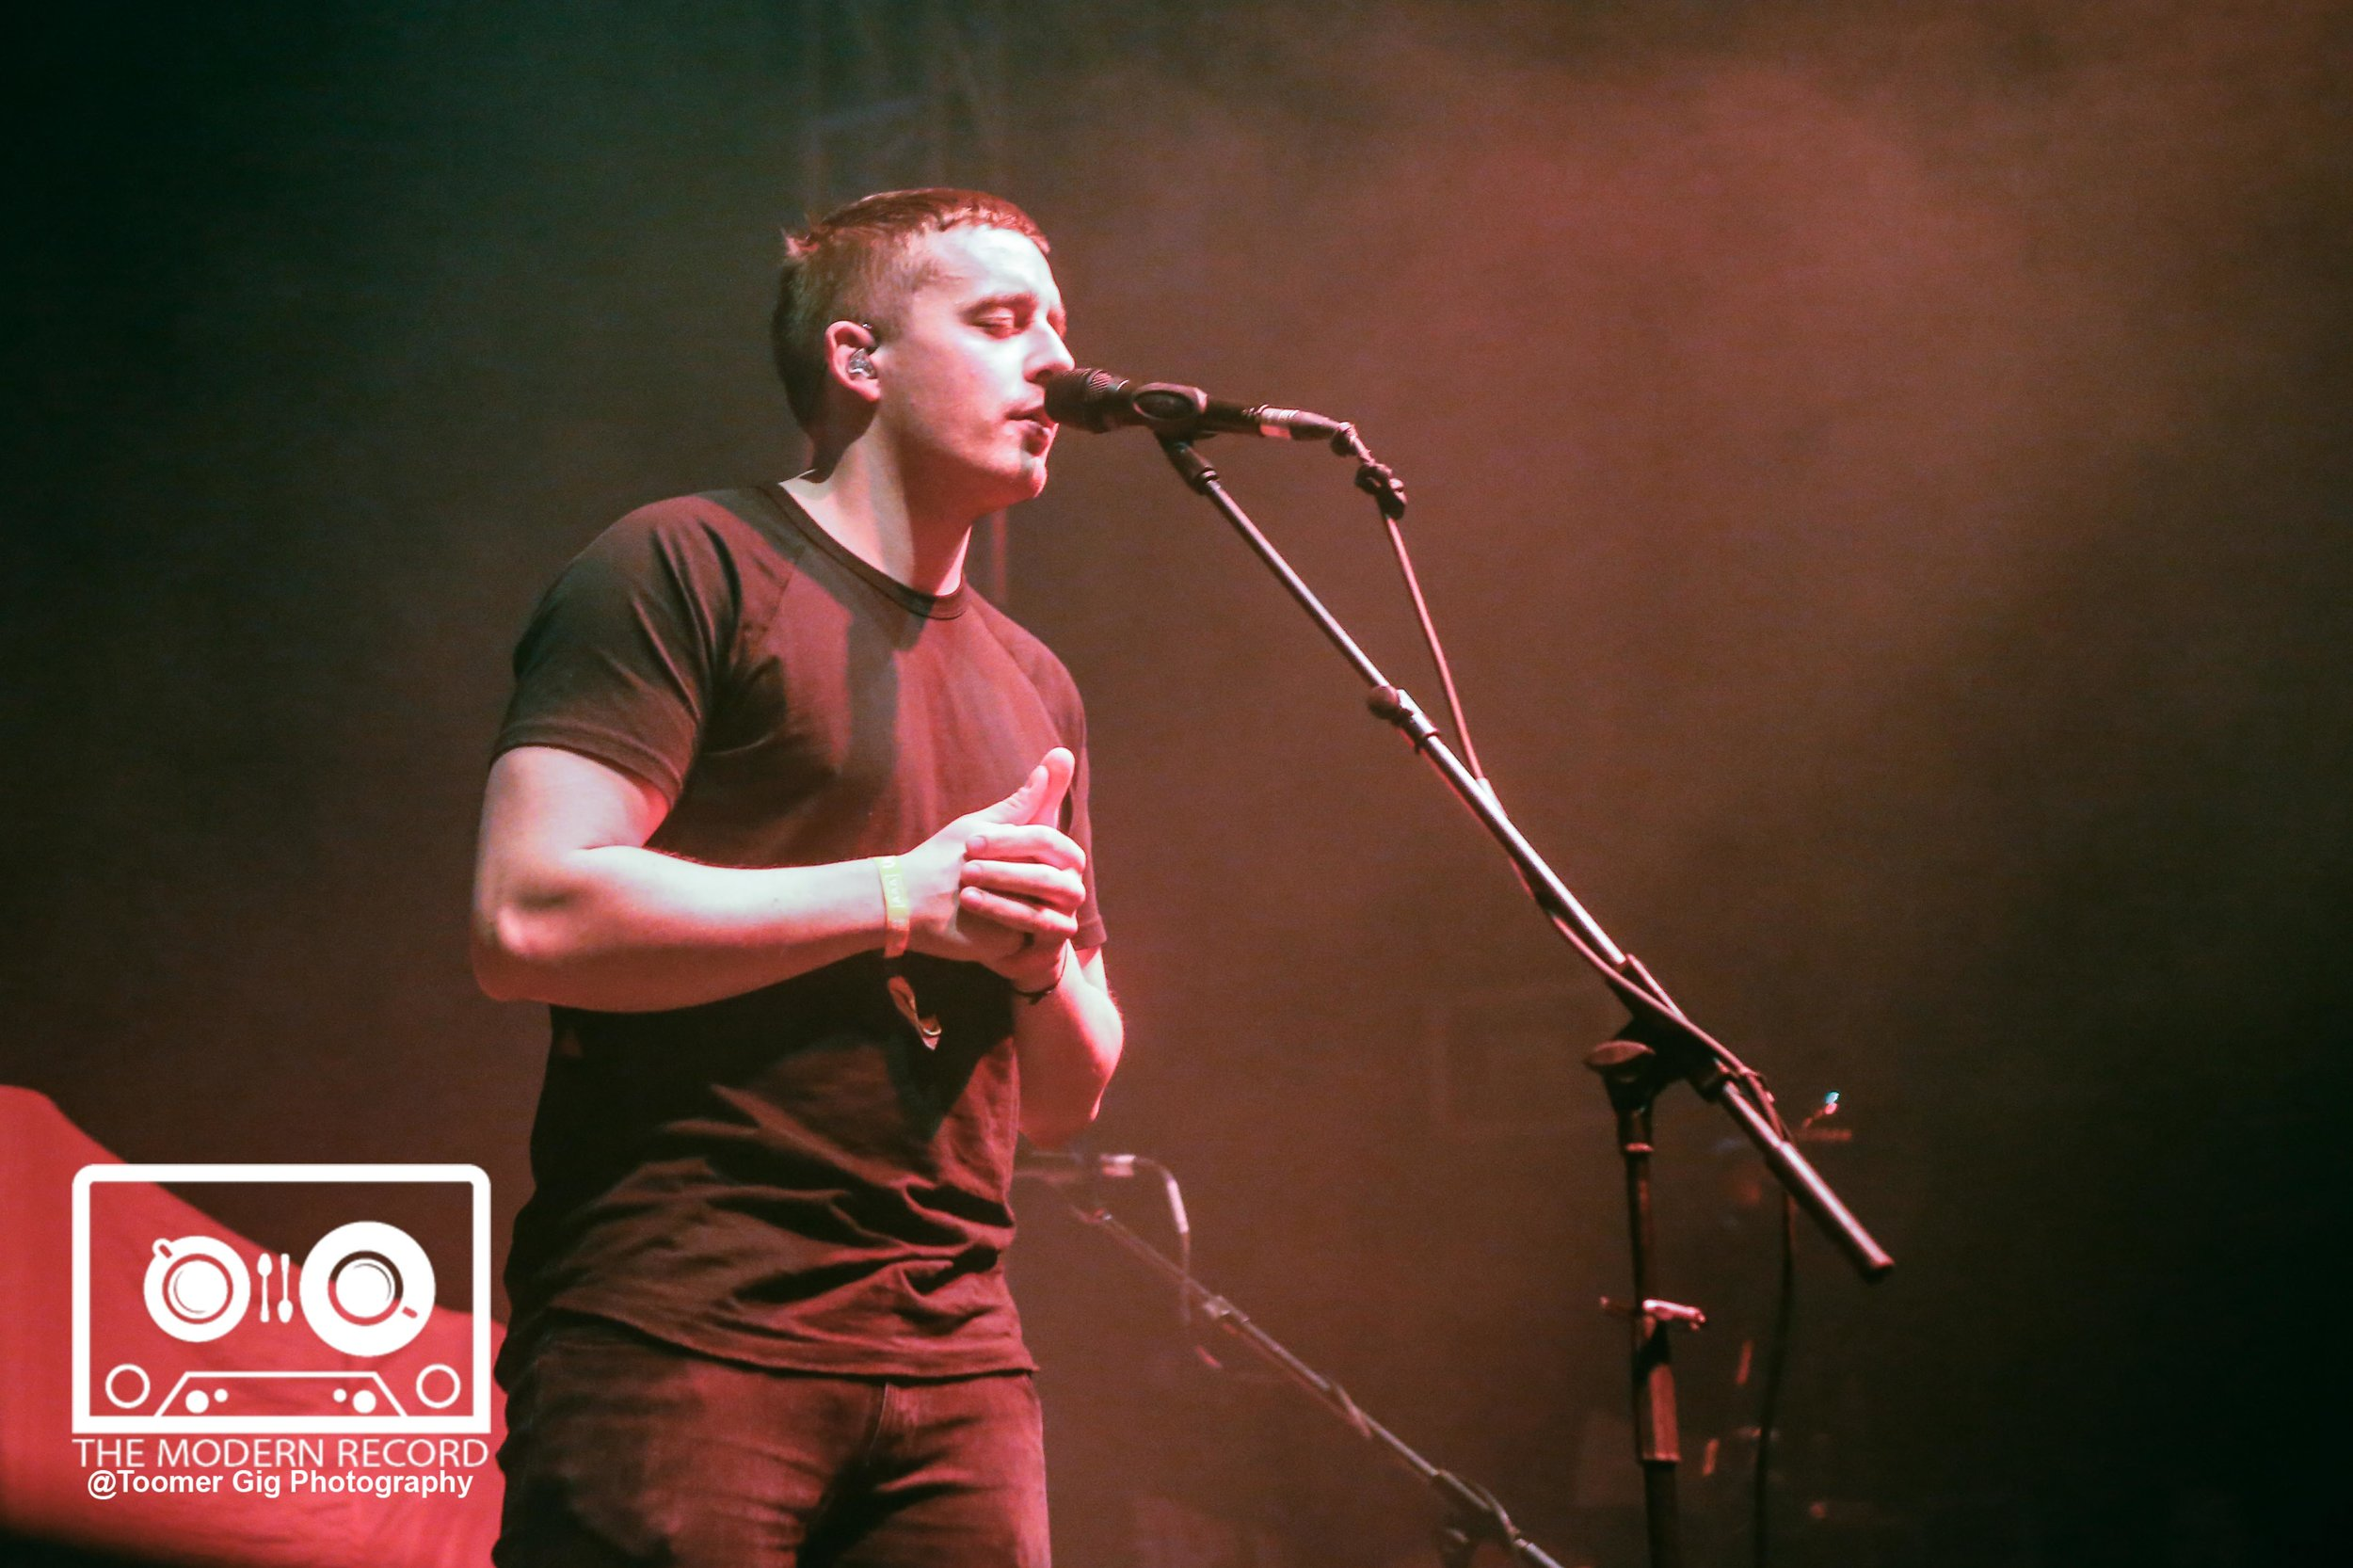 DERMOT KENNEDY PERFORMING AT LIVE AT LEEDS FESTIVAL 2018 - 05.05.2018  PICTURE BY: LAURA TOOMER @ToomerGigPhotograph